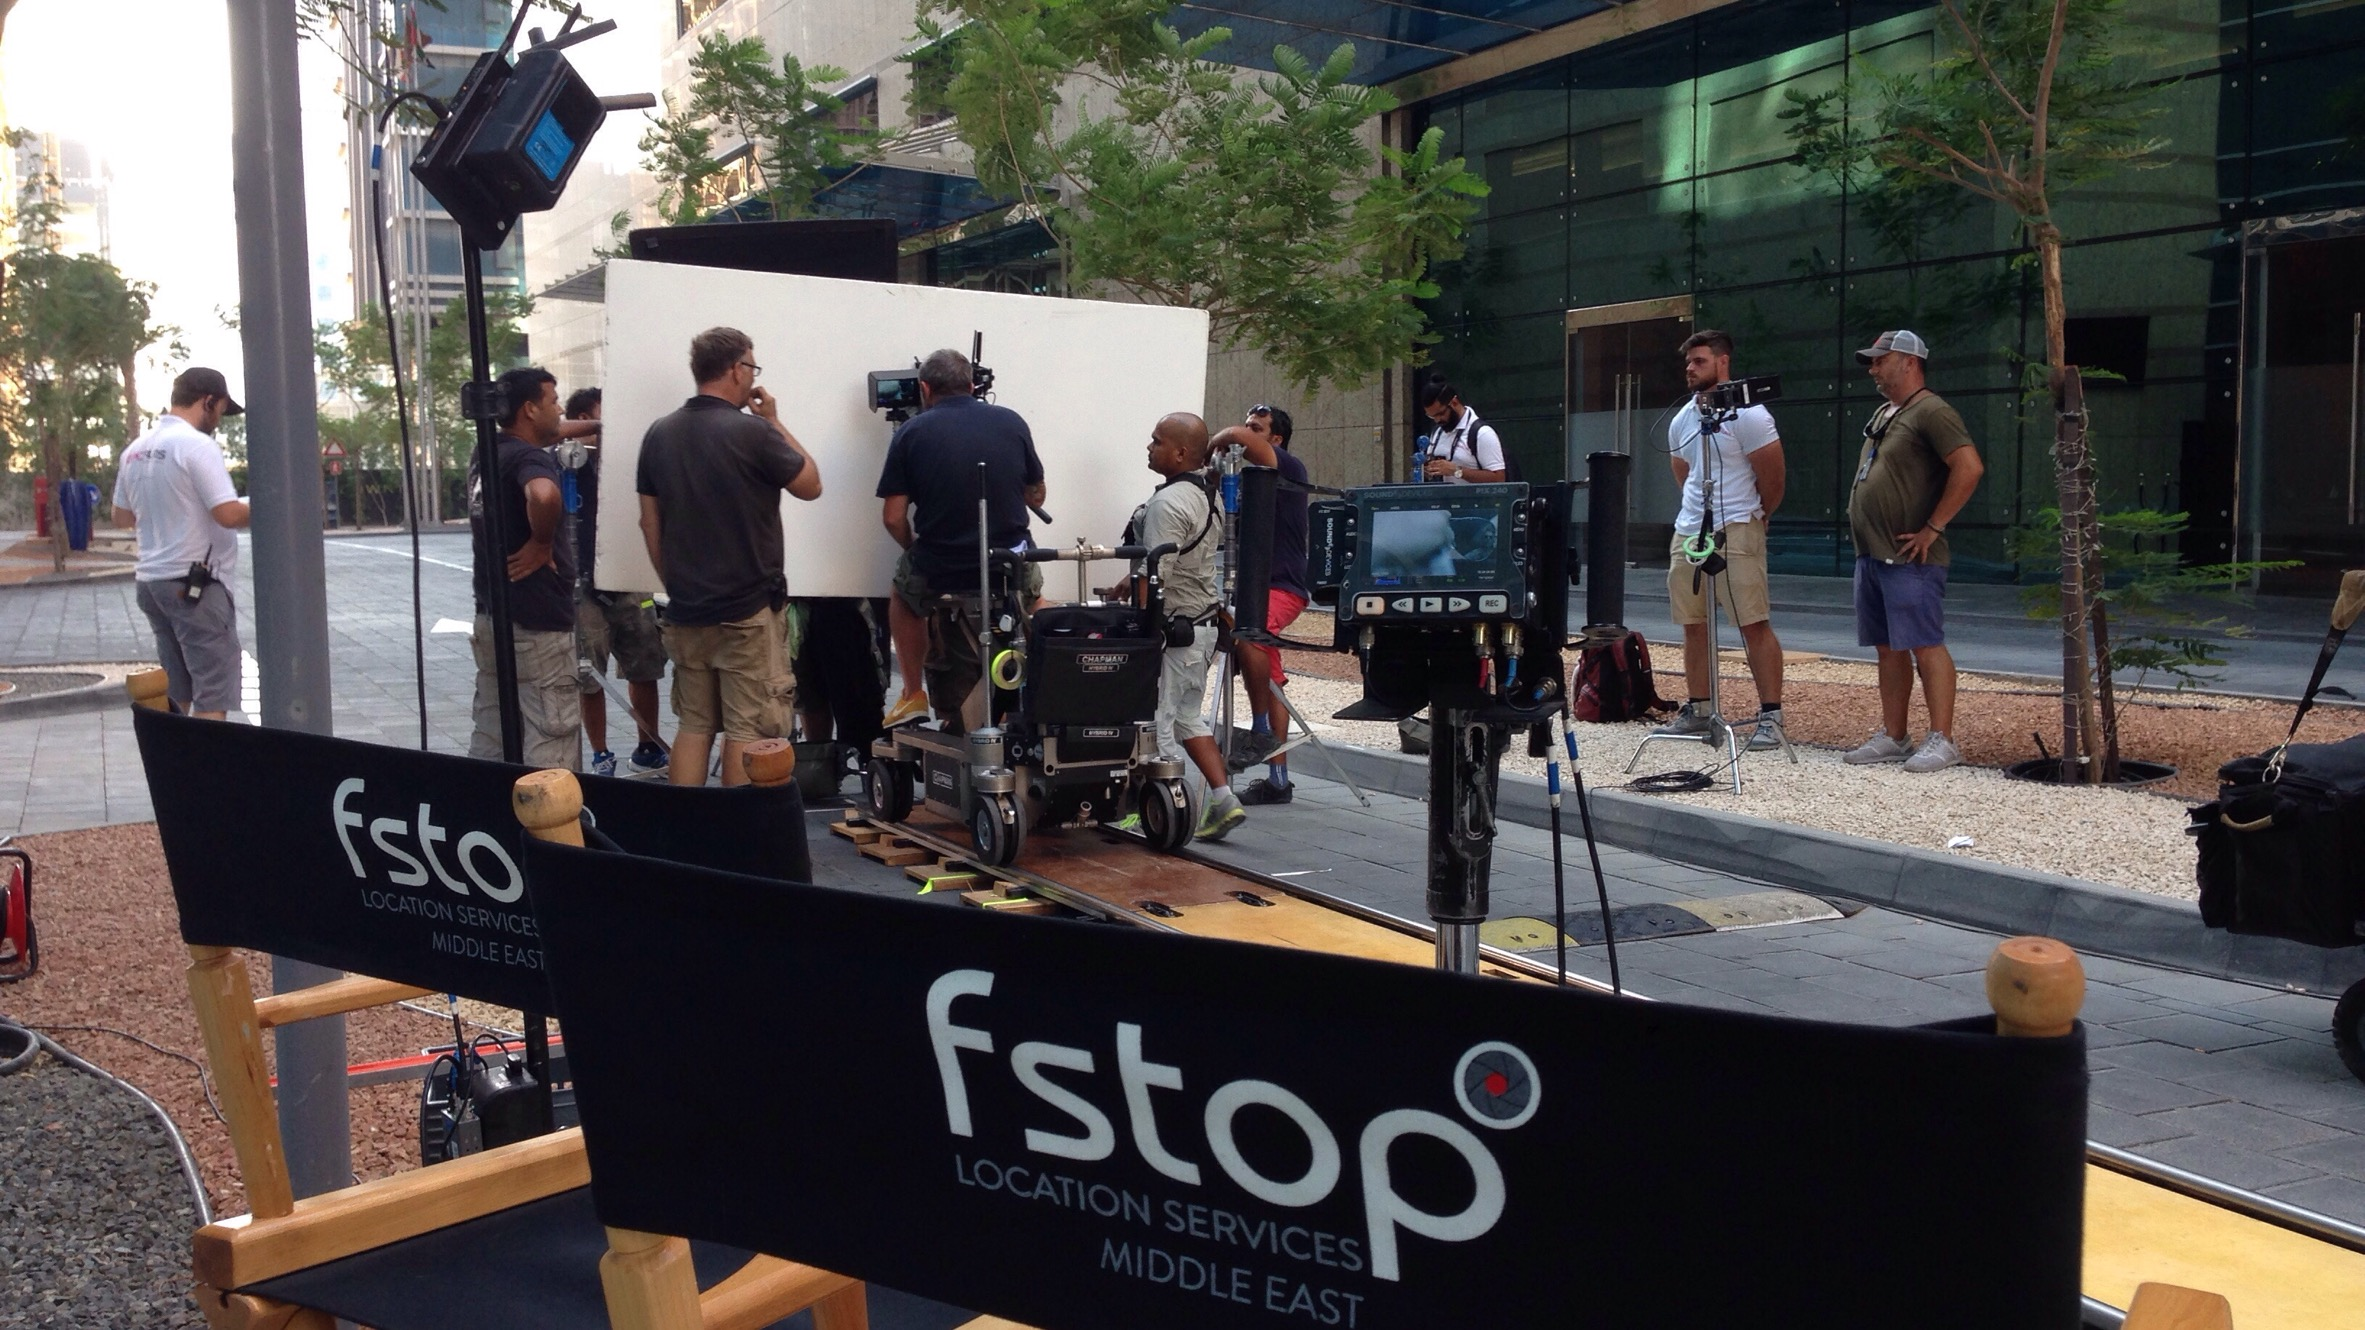 Fstop Location Images 5